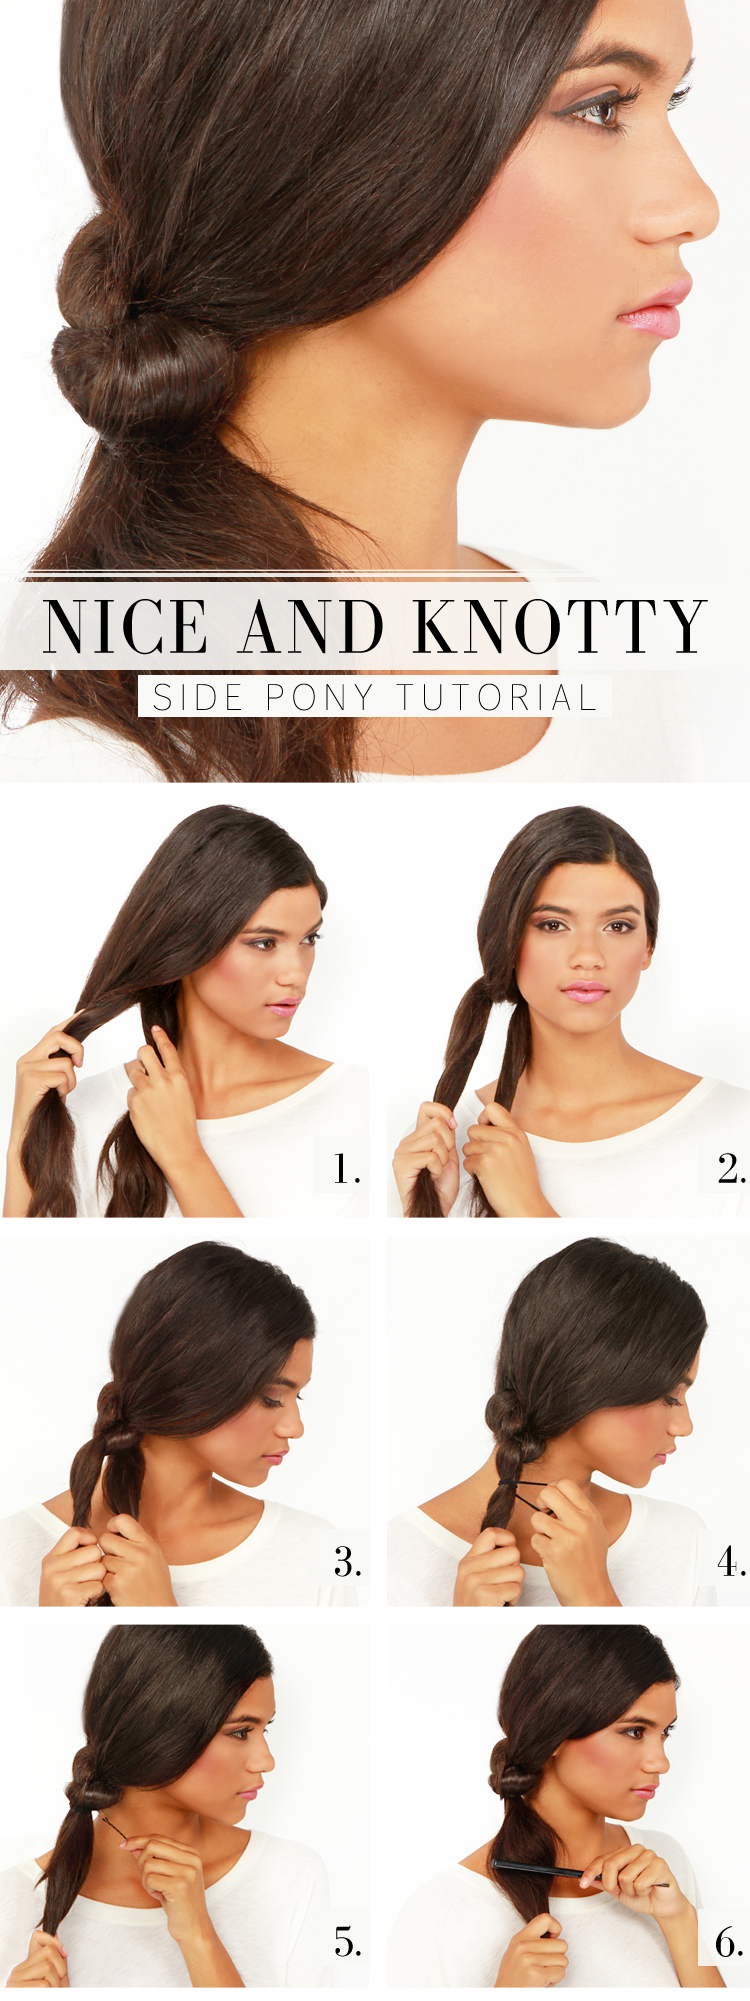 Knotty side ponytail tutorial